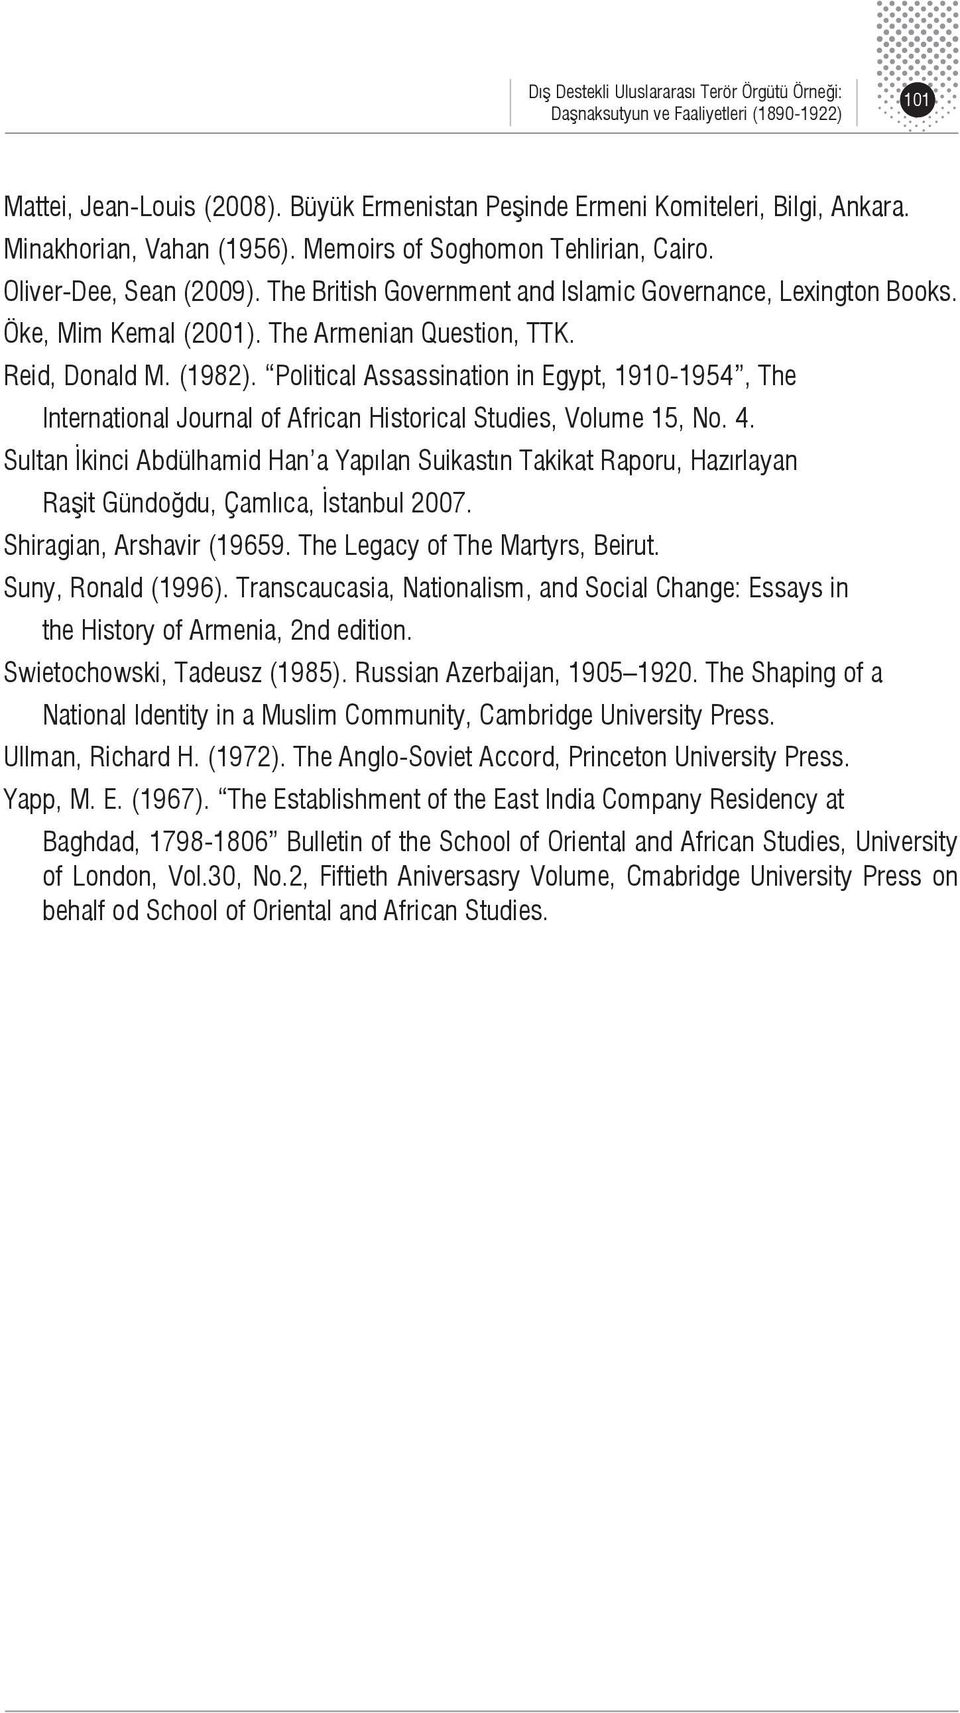 Political Assassination in Egypt, 1910-1954, The International Journal of African Historical Studies, Volume 15, No. 4.